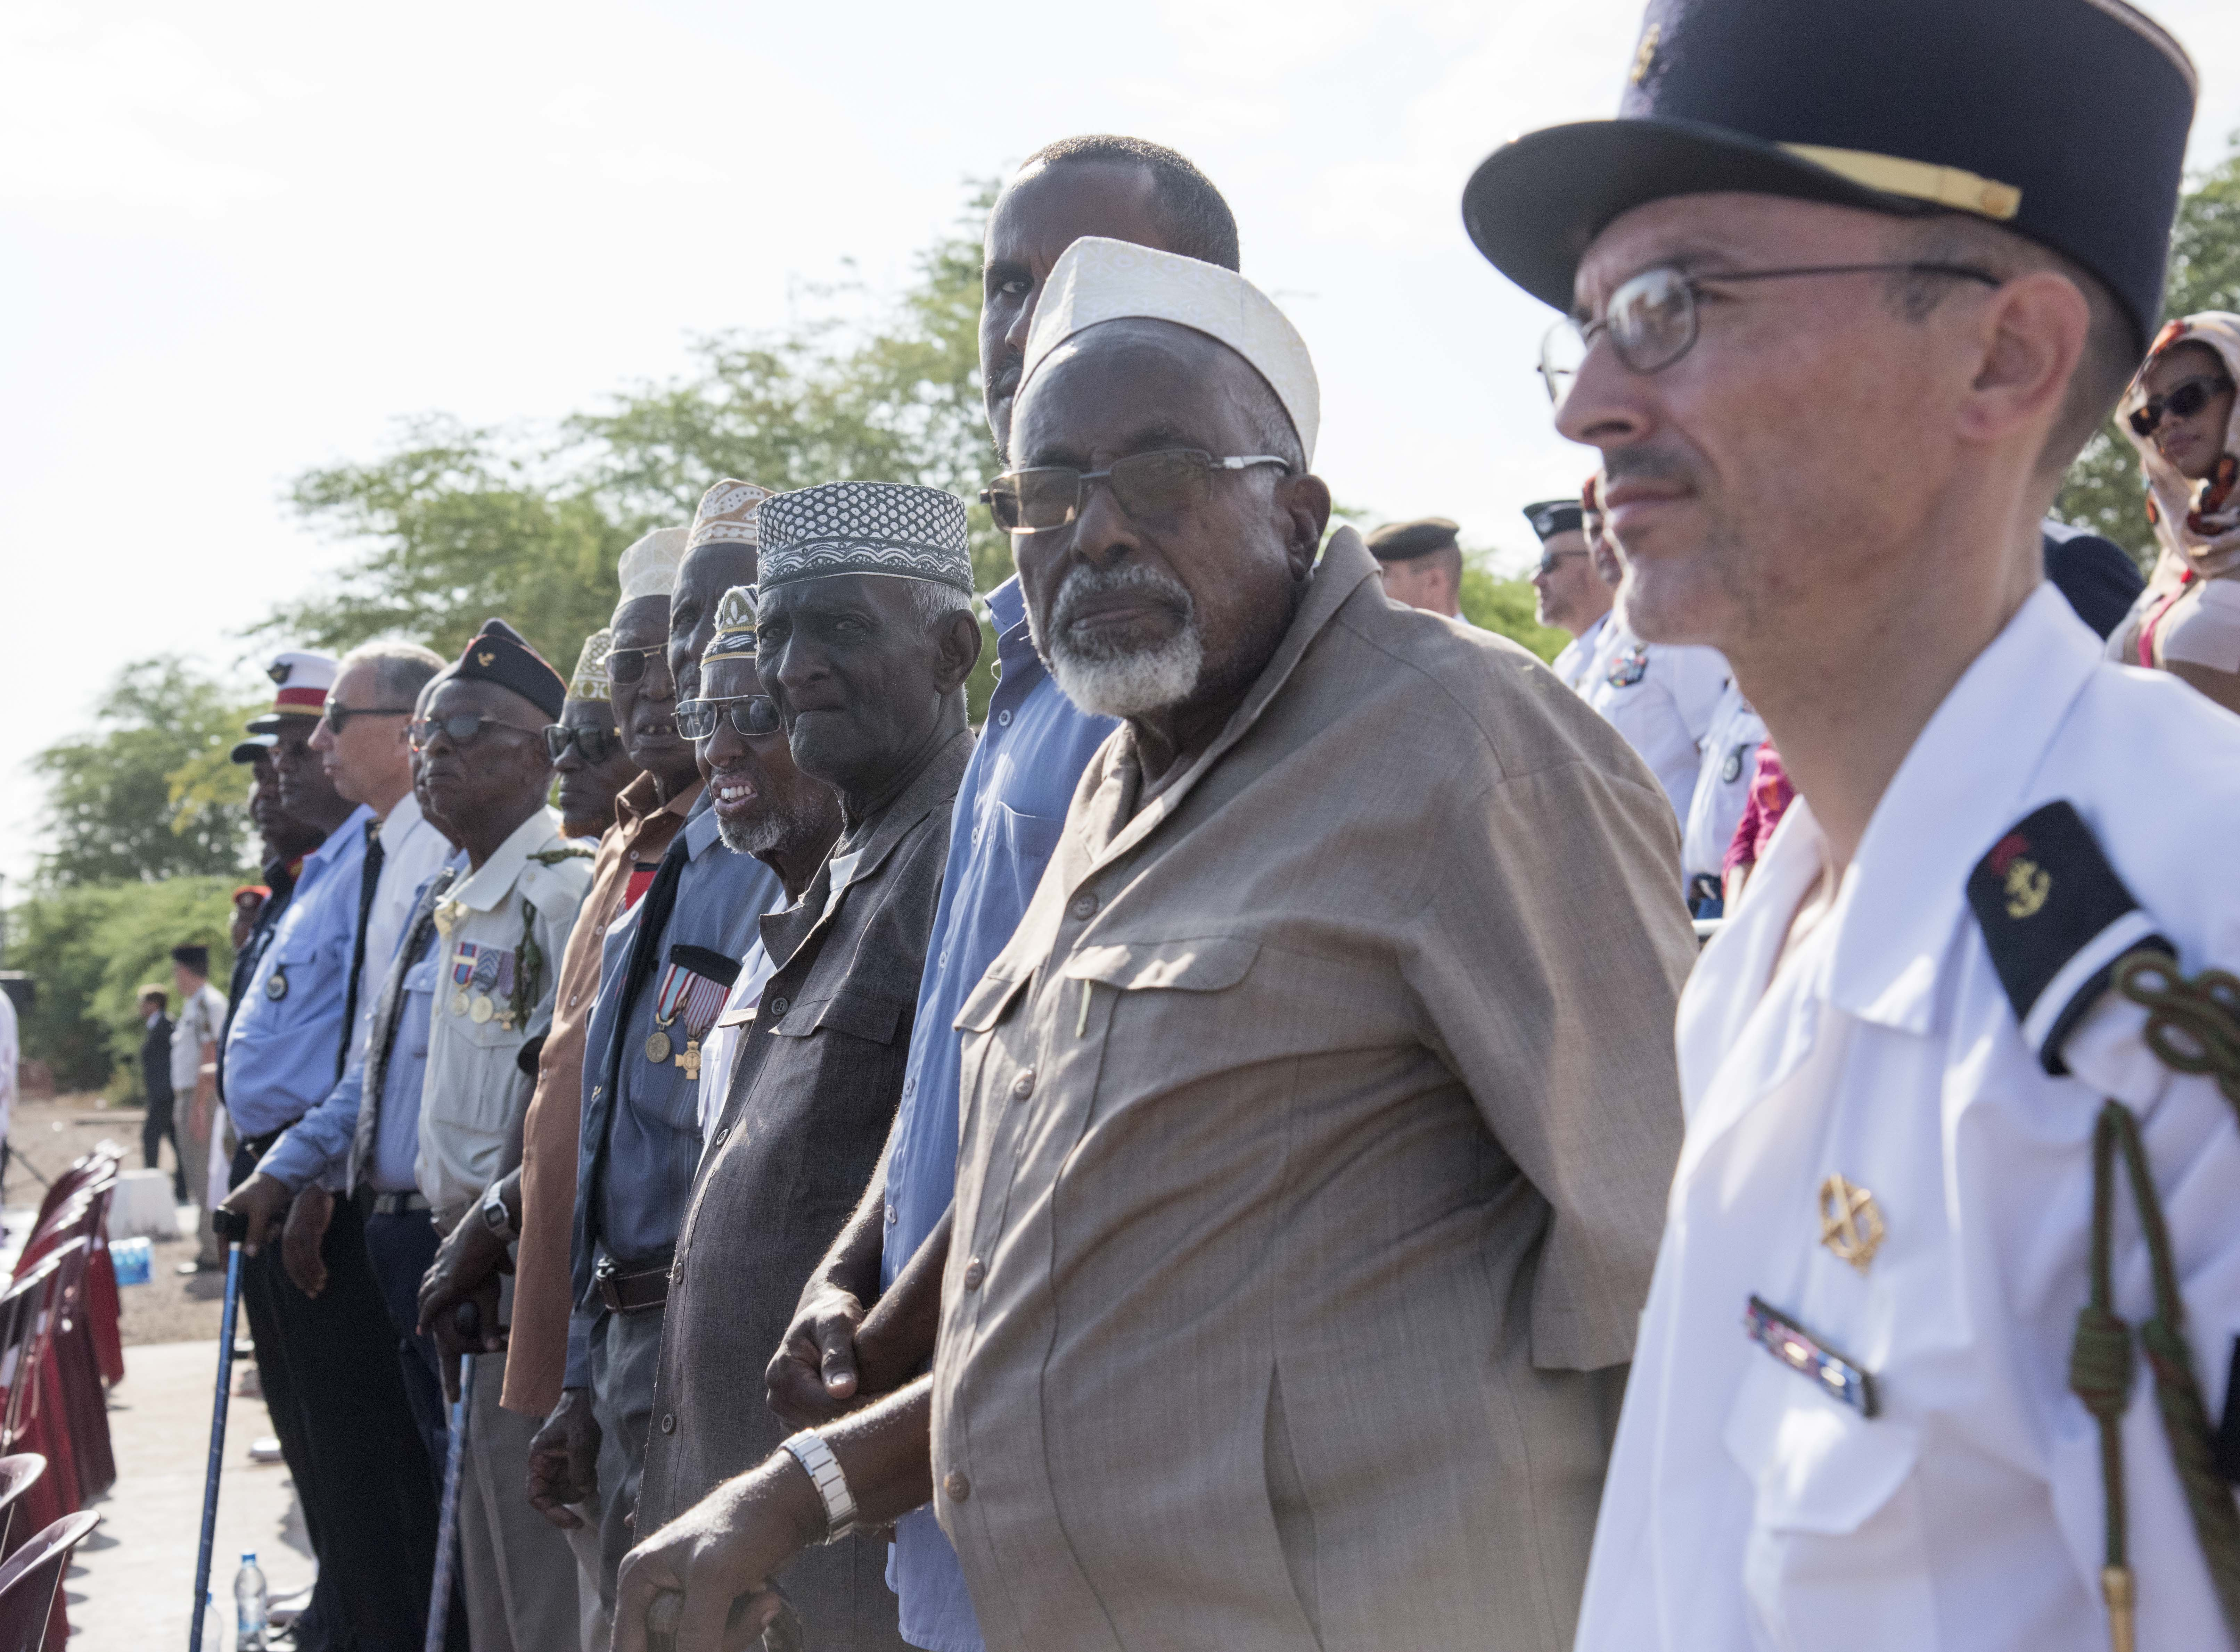 Veterans of the French Somali Battalion observe events during the Armistice Day ceremony at the French Marine Base, Nov. 11, 2015. The veterans from World War II were guests of honor for the event.